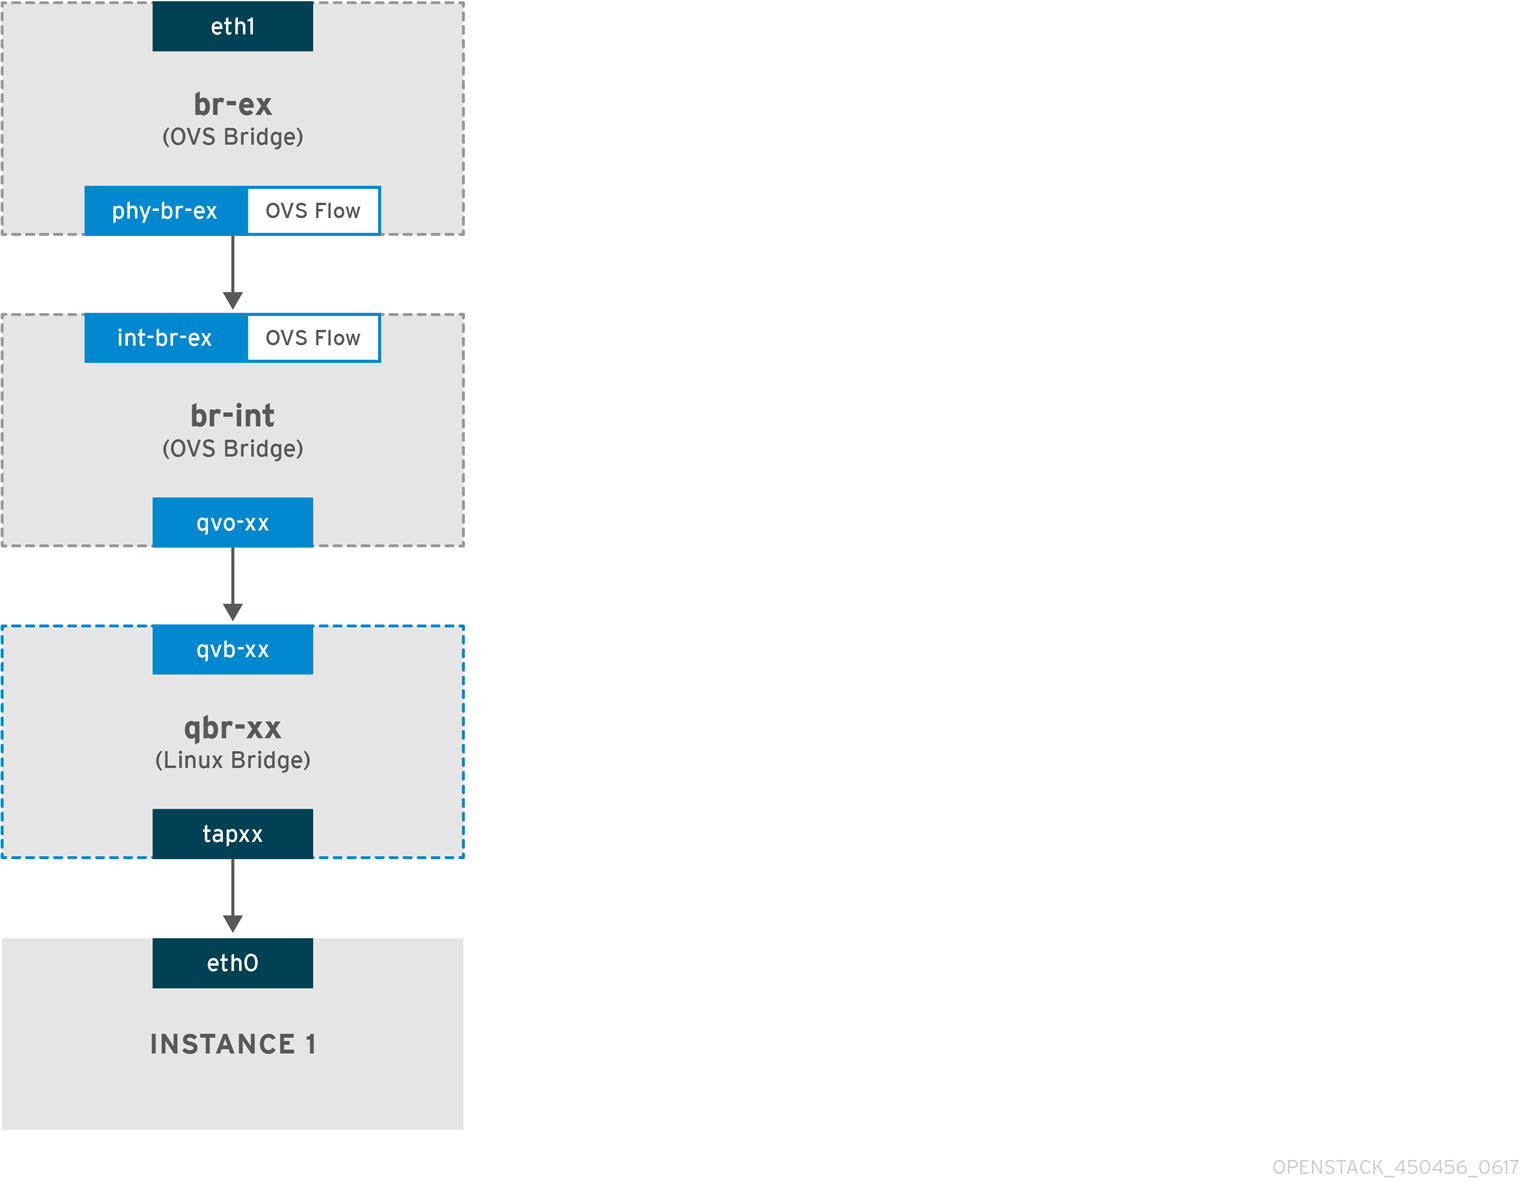 Network packet flow - incoming